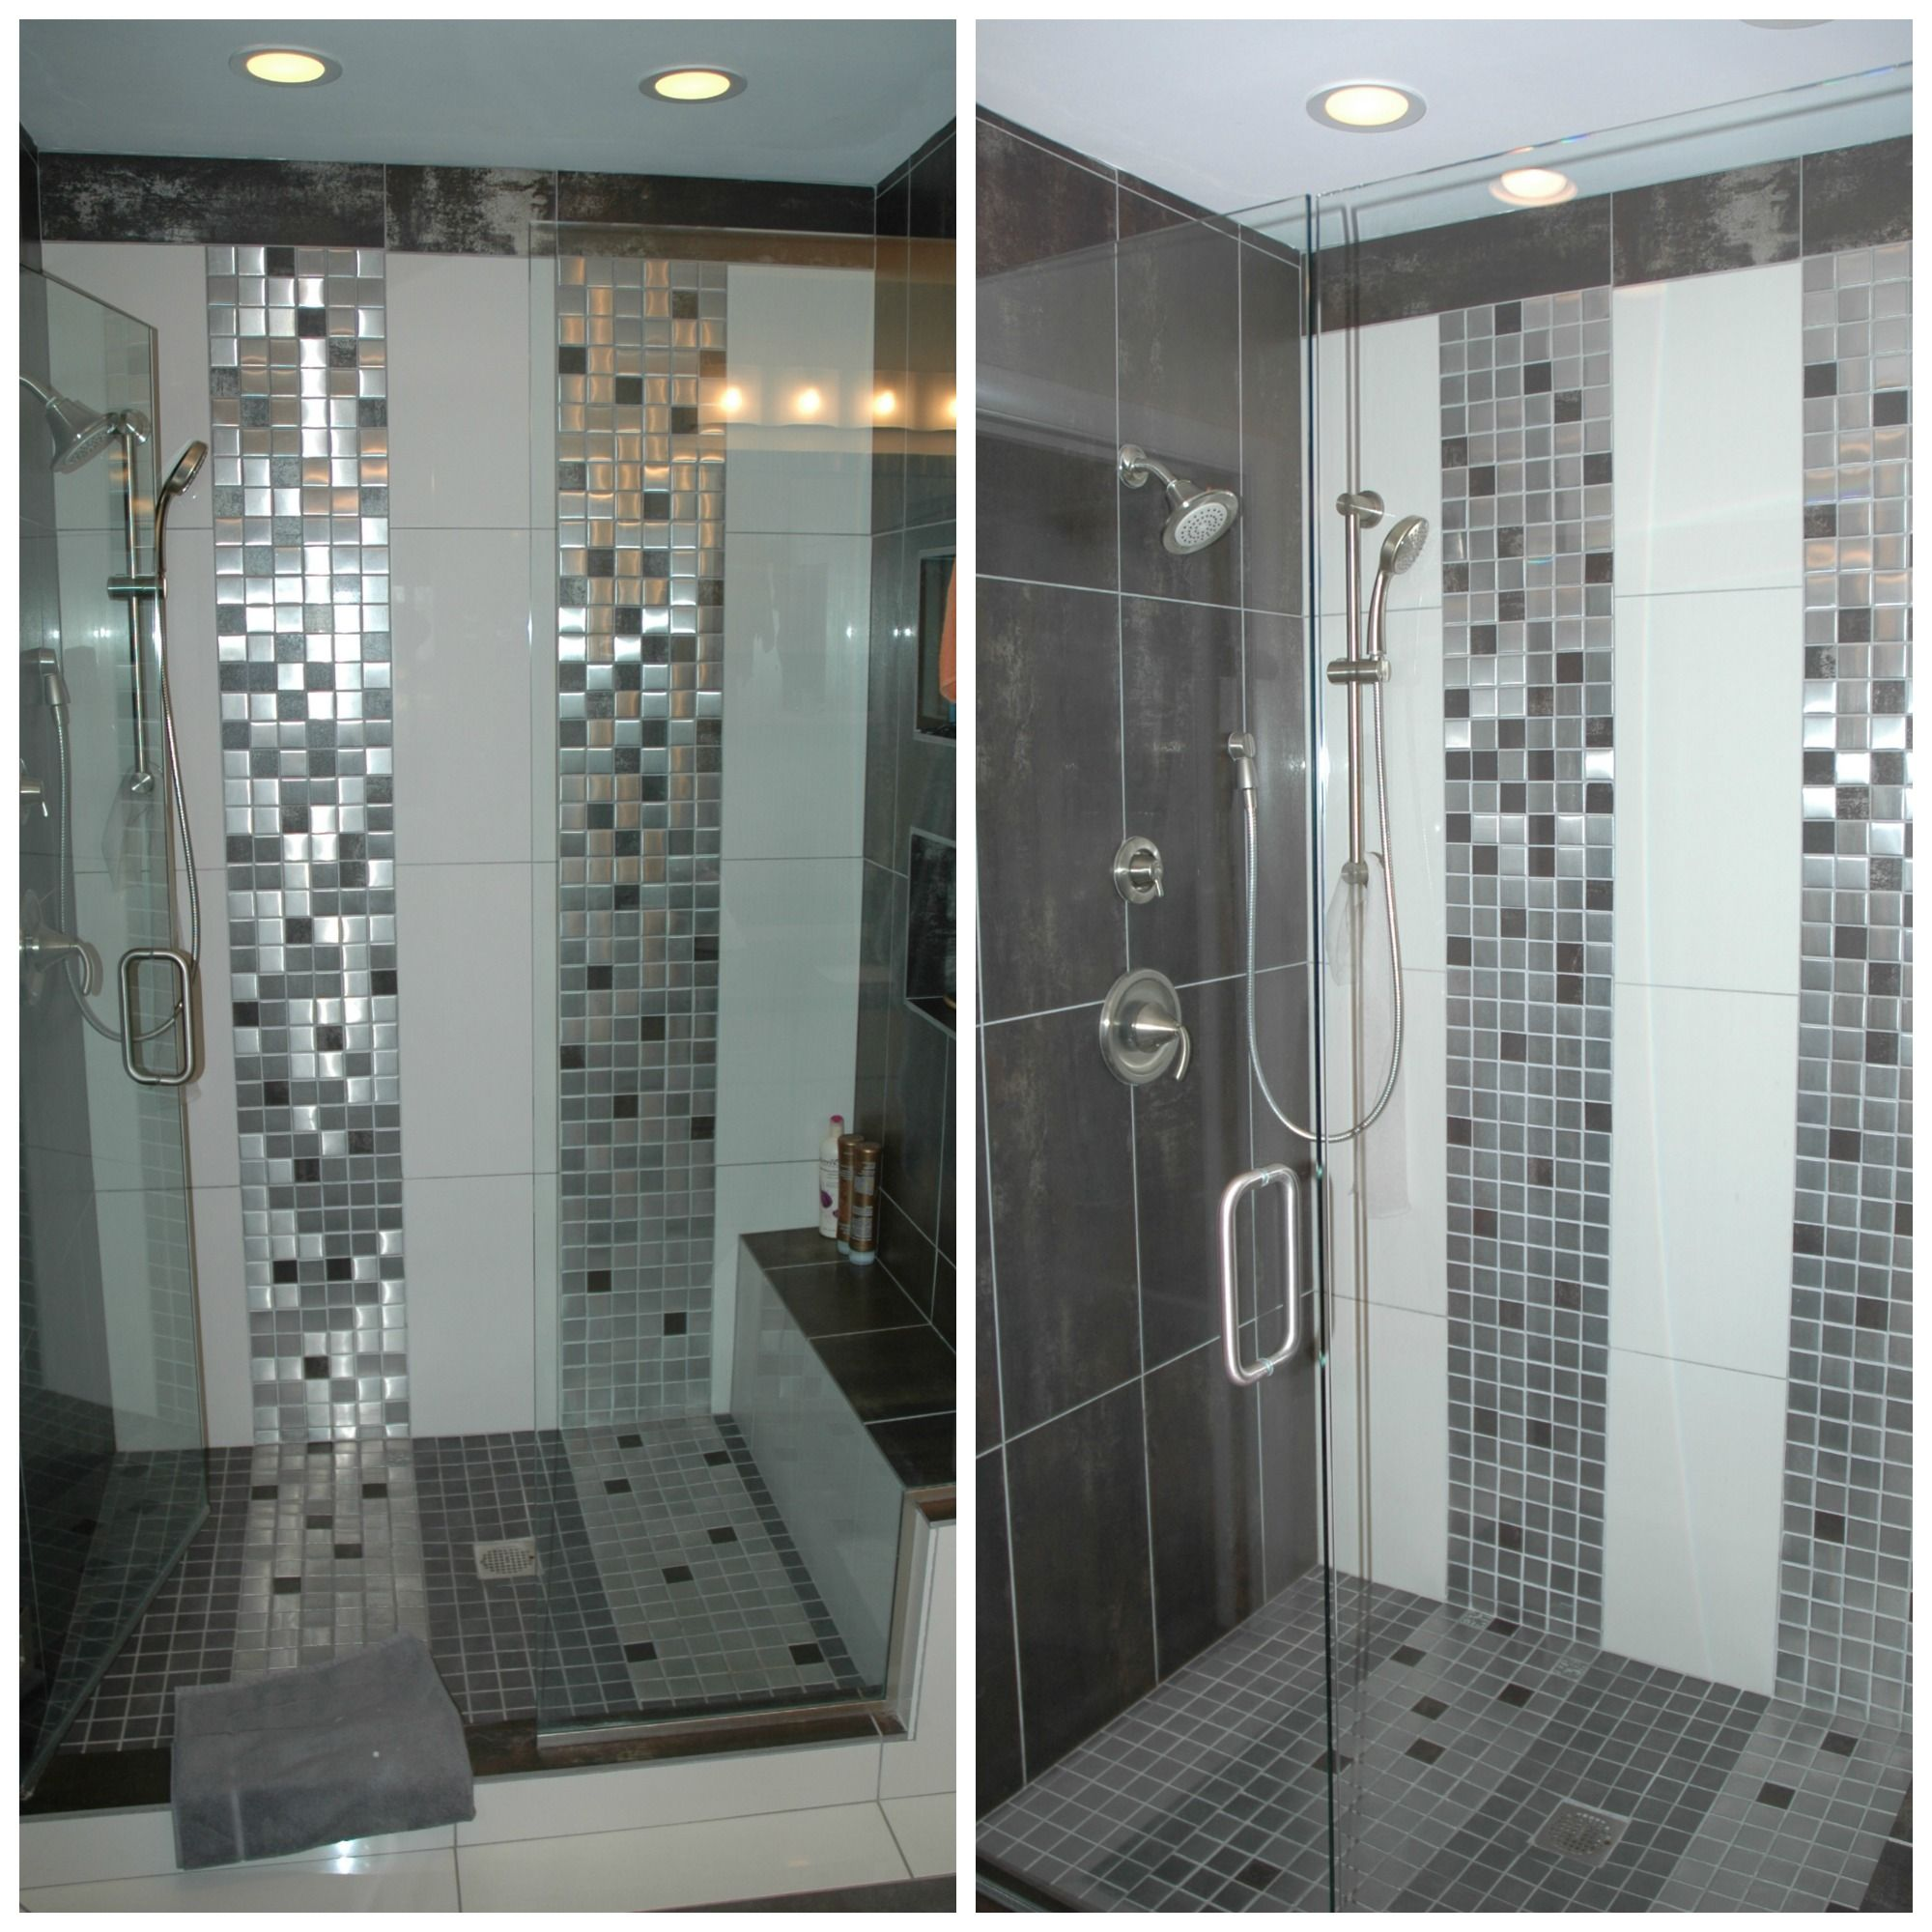 What makes this space special? The vertical mosaic accent tile and ...